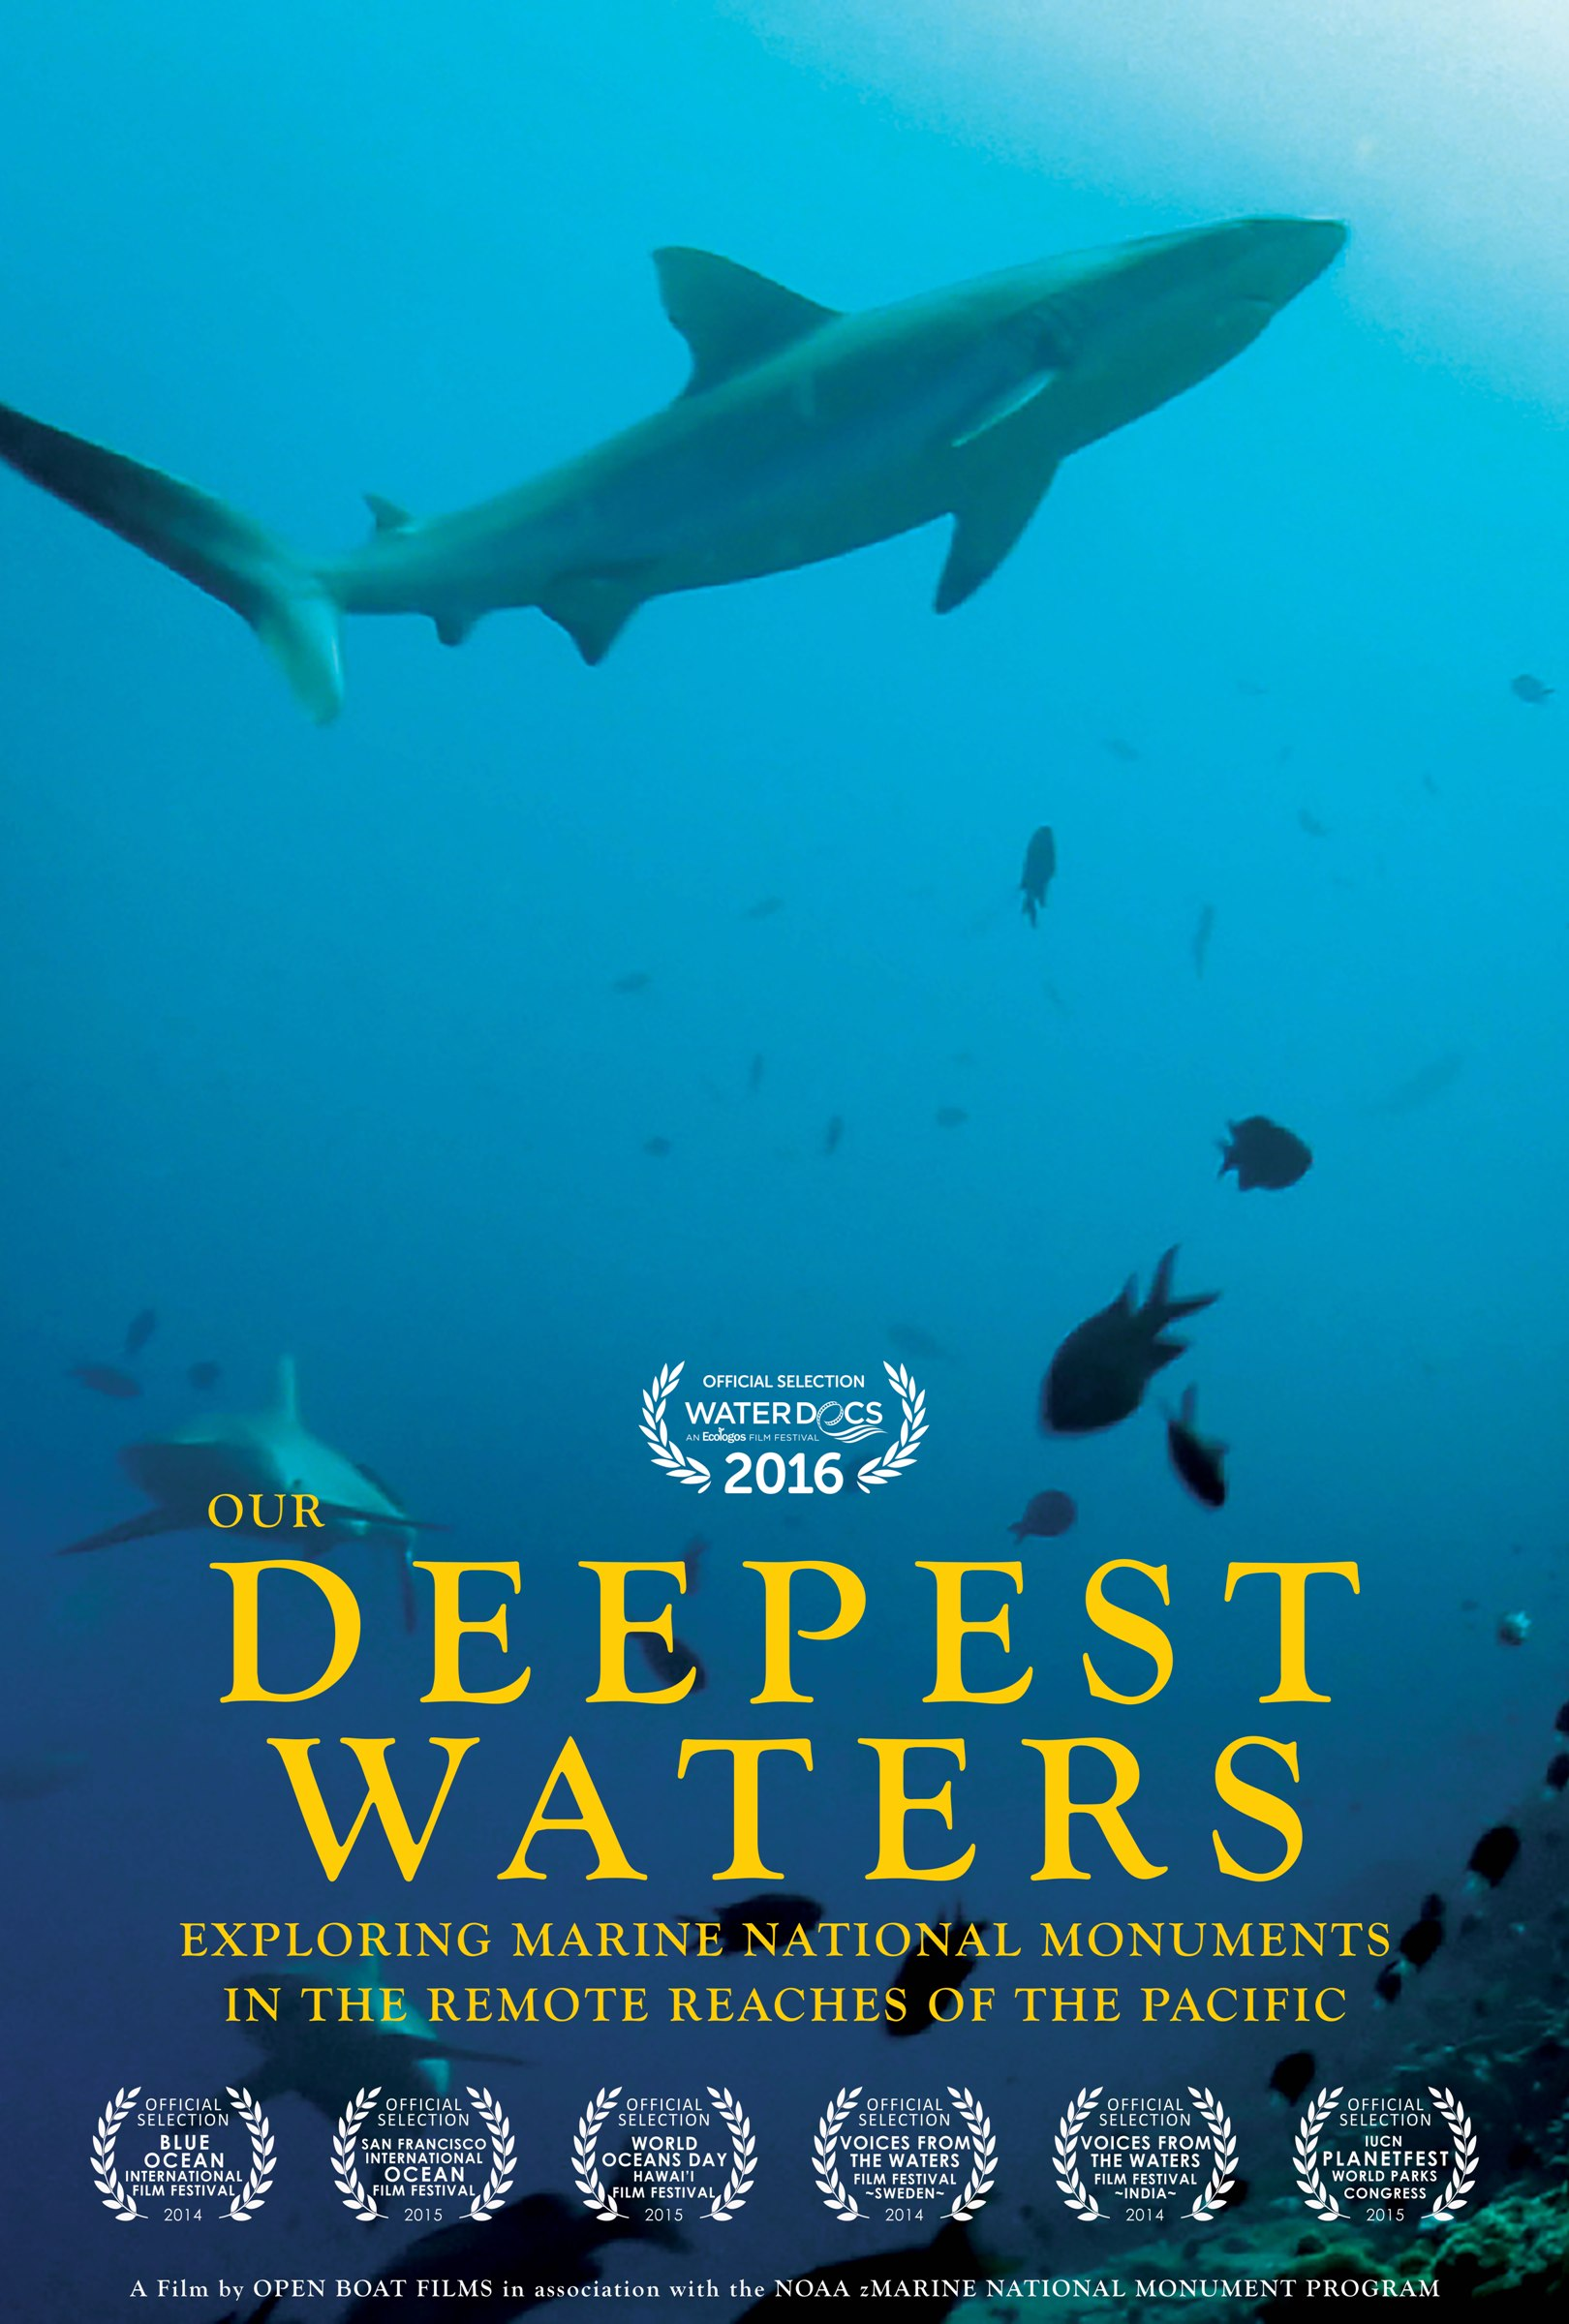 Our Deepest Waters: Exploring Marine National Monuments in the Remote Reaches of the Pacific (2014, 20 min, USA)